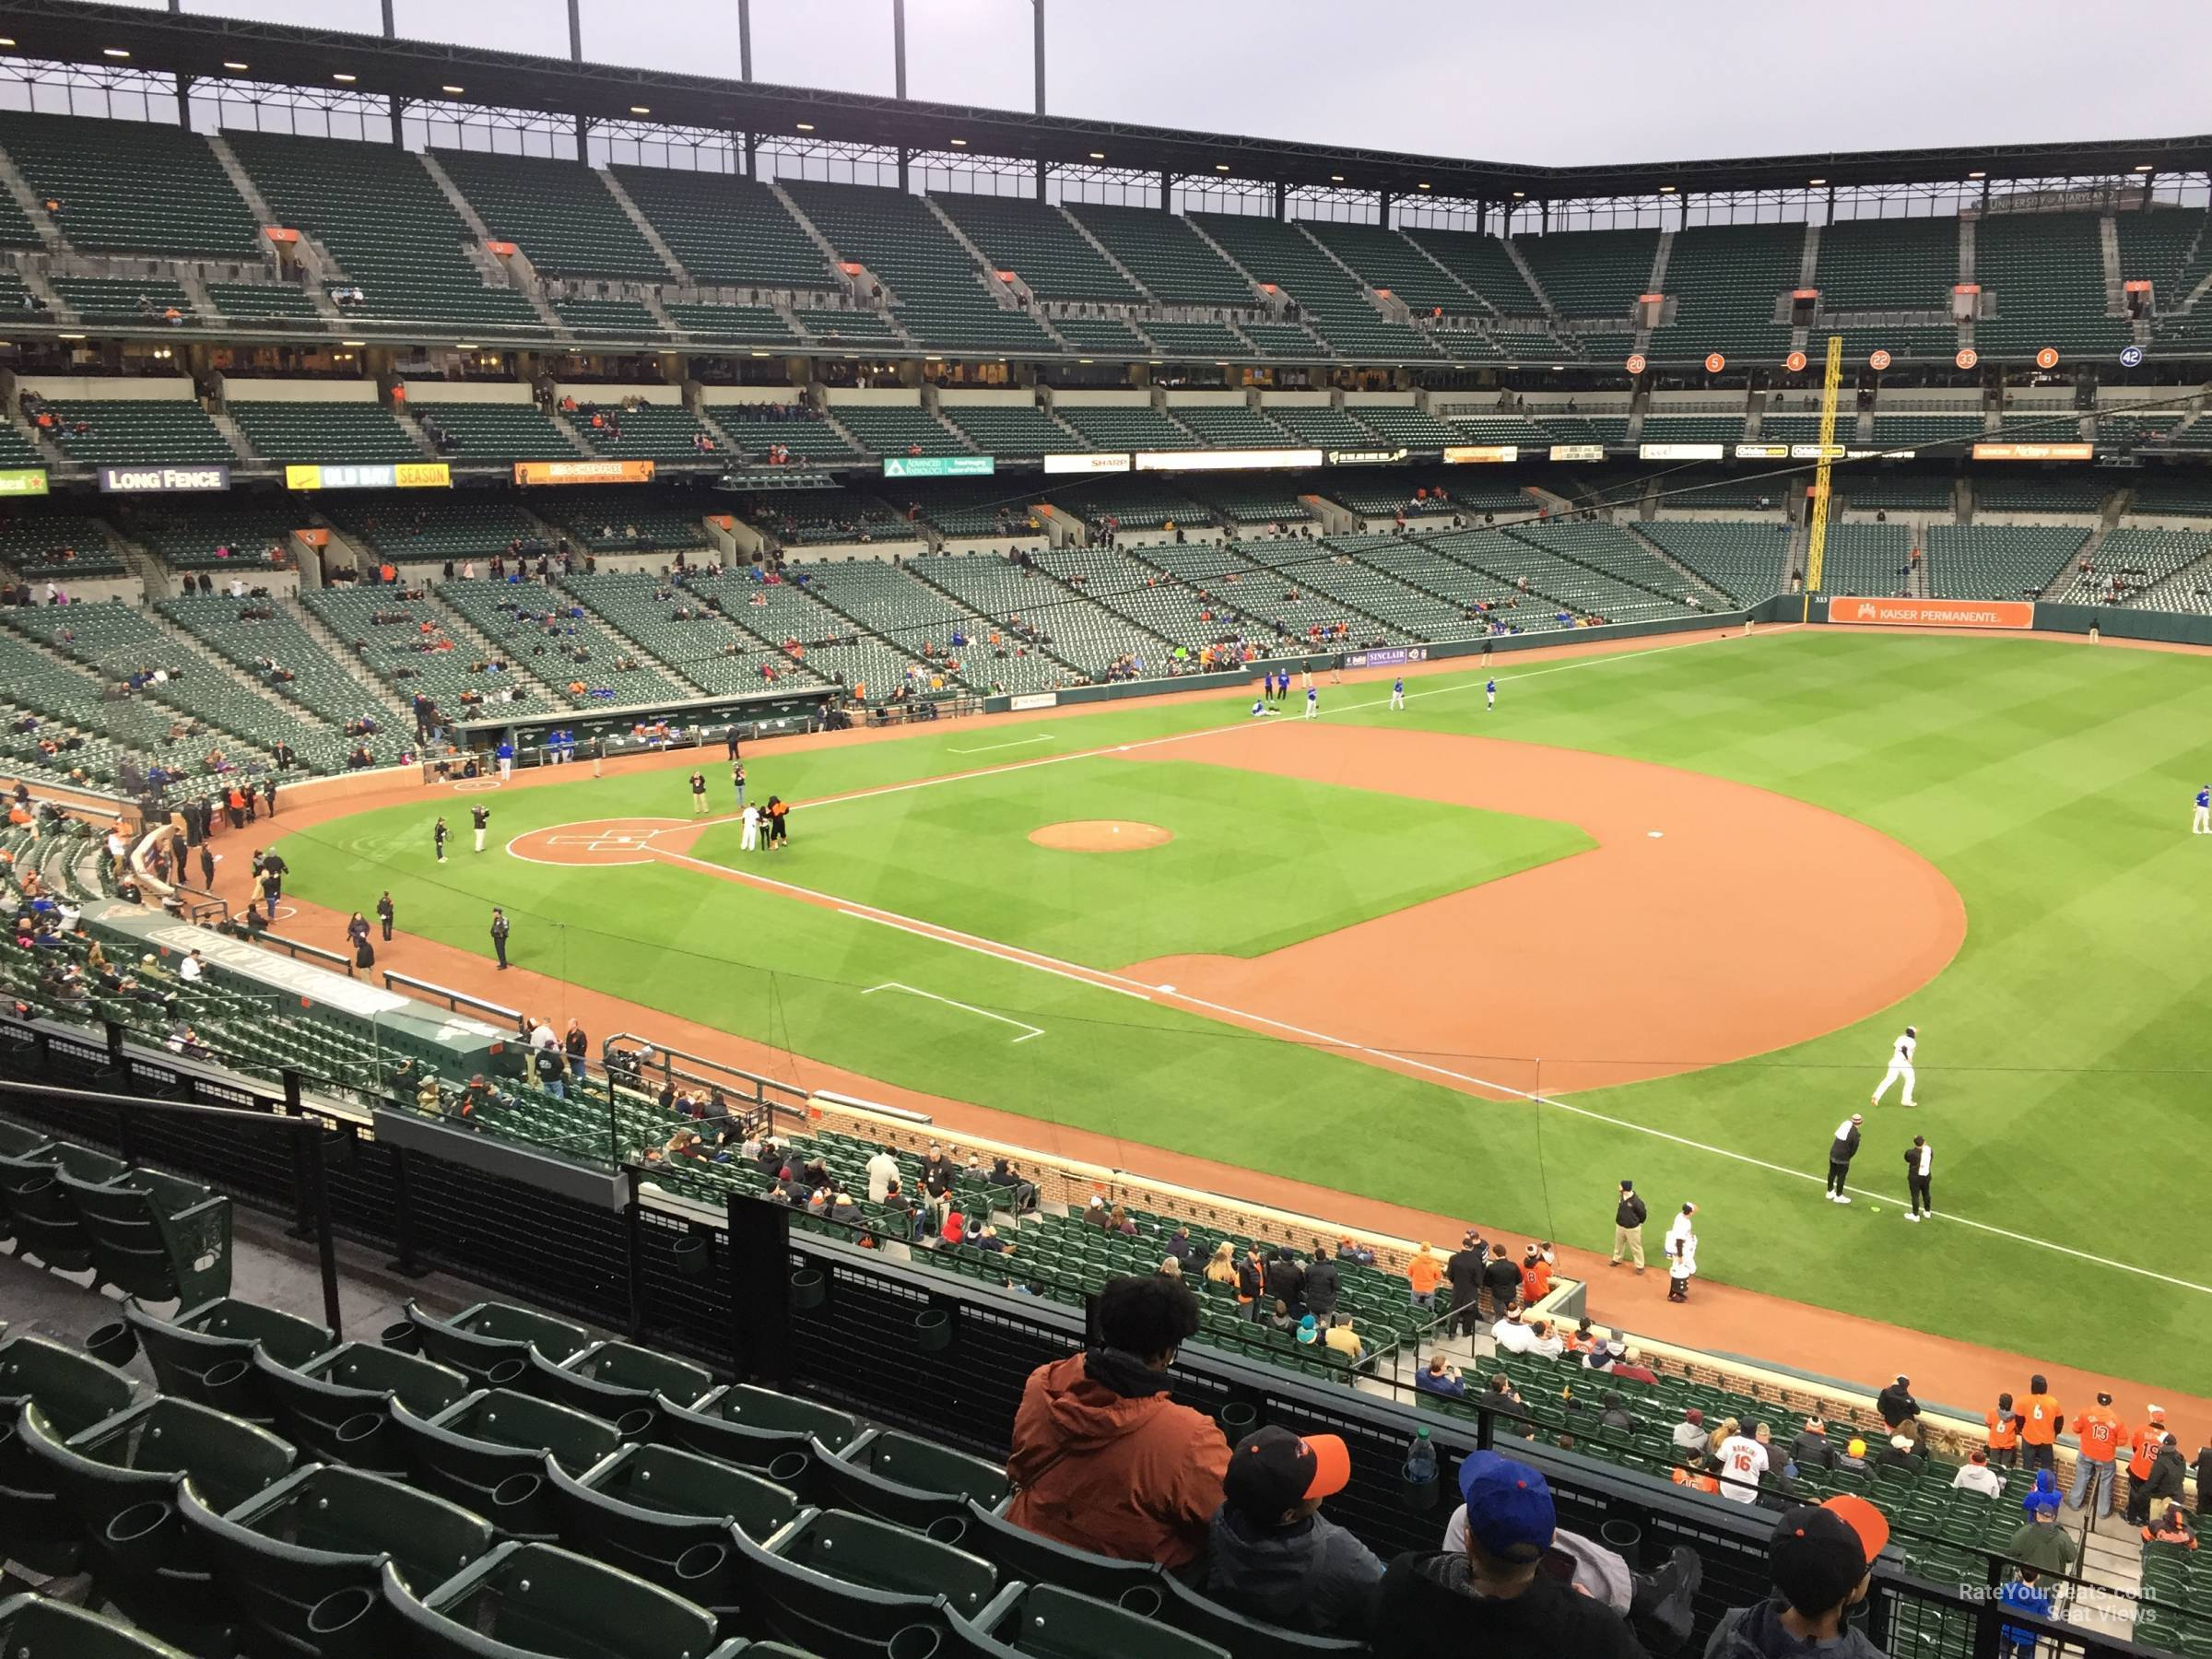 Camden Yards Seating Chart With Row Numbers Cabinets